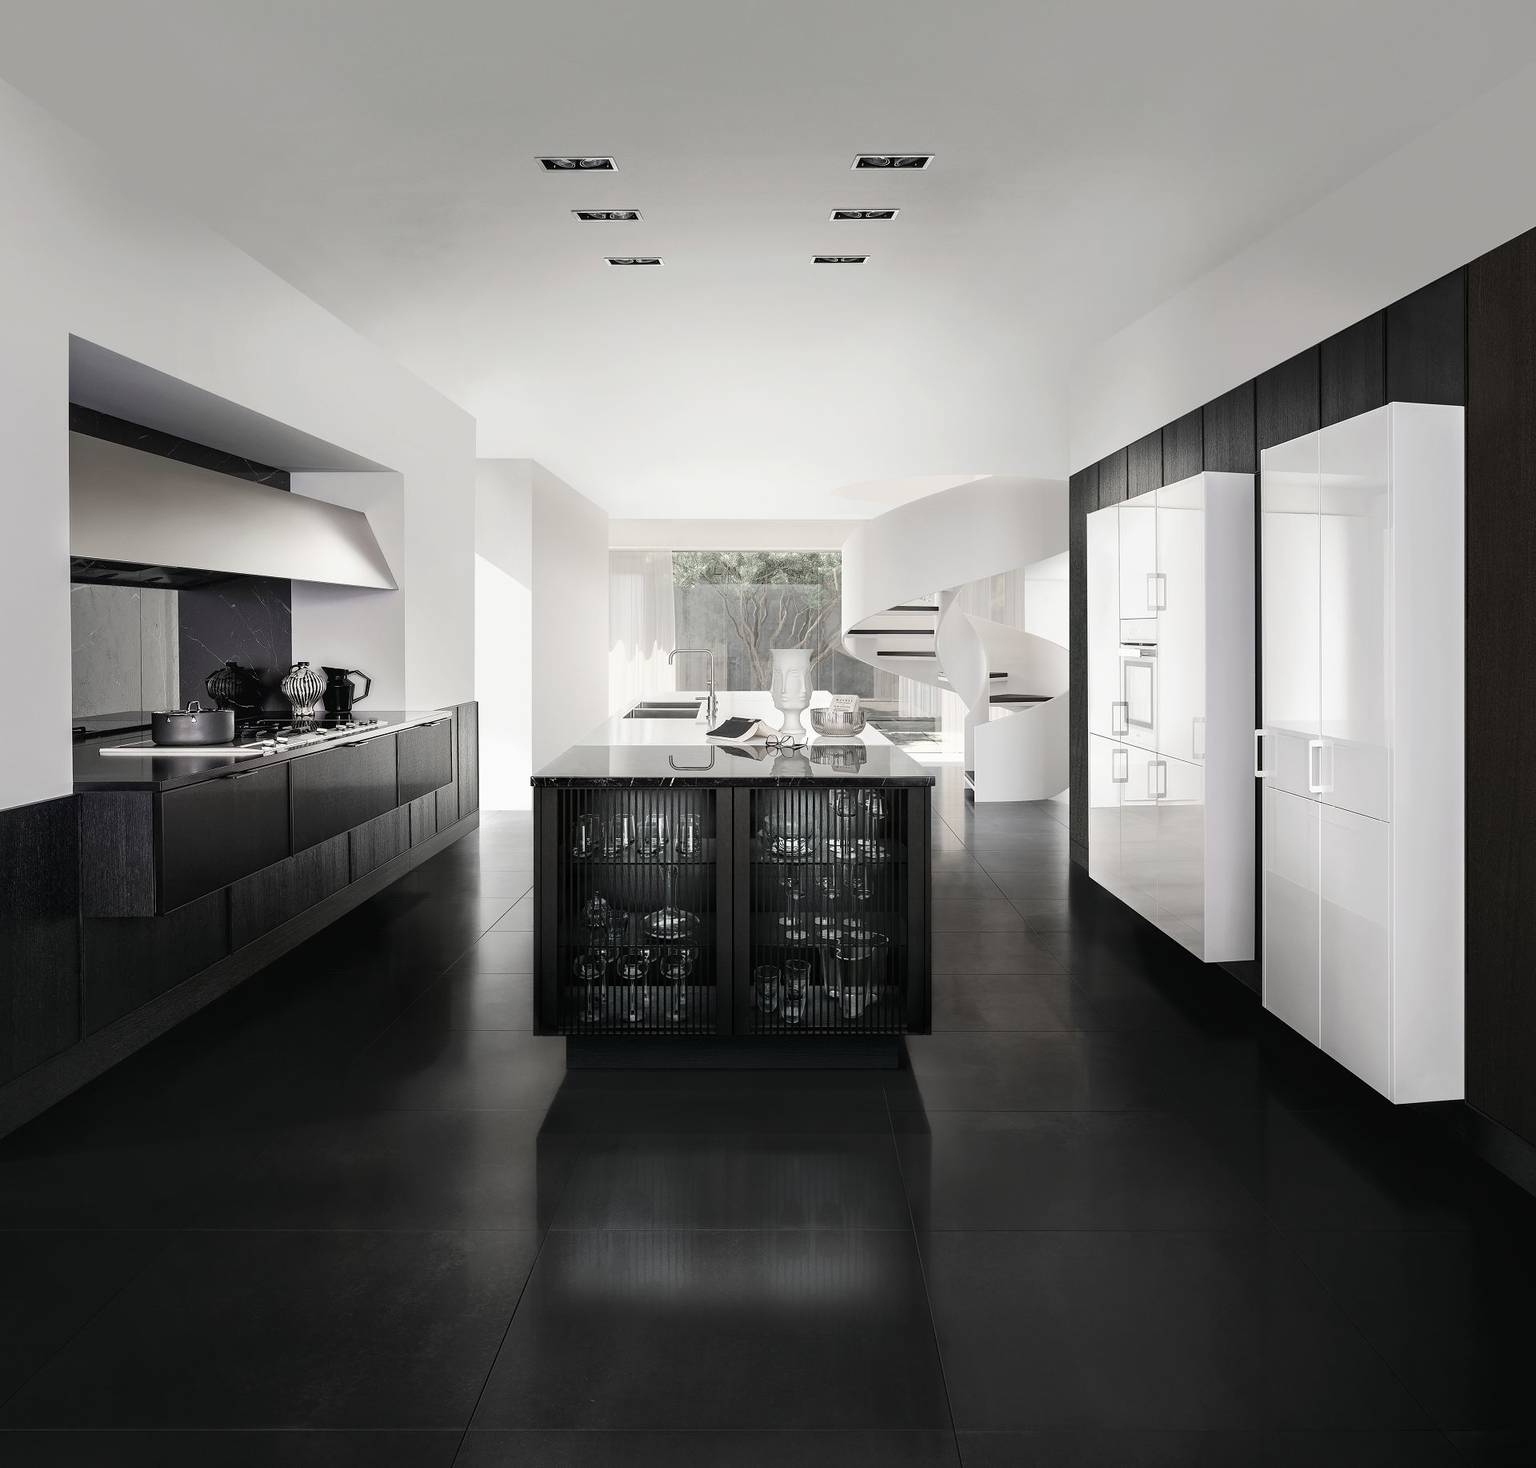 SieMatic Pure minimalistisches Küchendesign maximale Perfektion #2: csm siematic pure 032 8d f2b